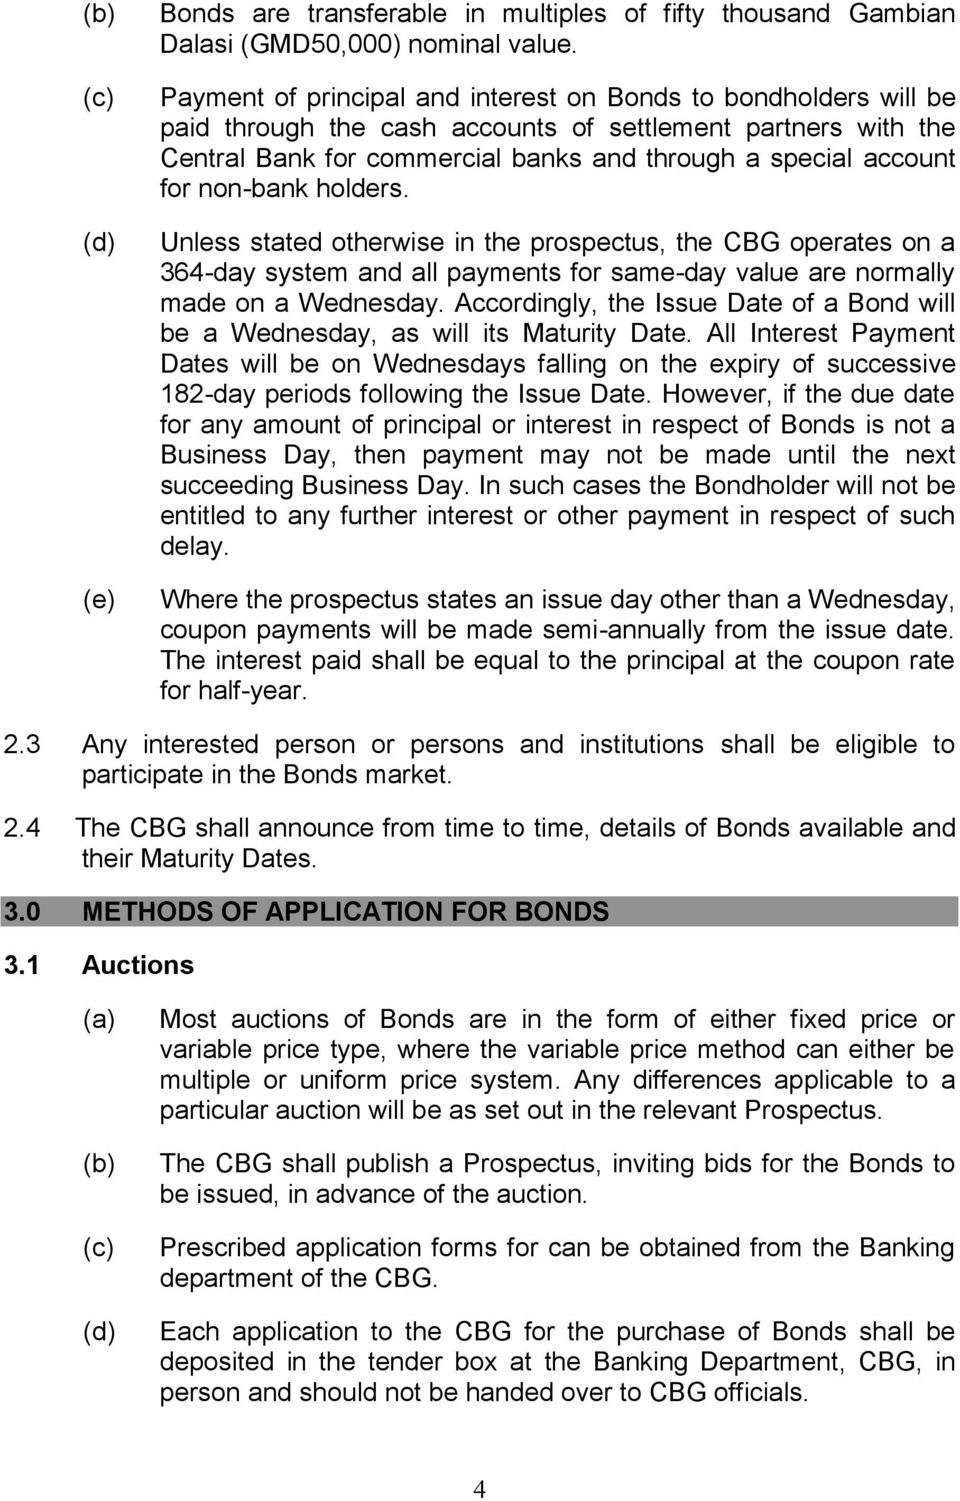 non-bank holders. Unless stated otherwise in the prospectus, the CBG operates on a 364-day system and all payments for same-day value are normally made on a Wednesday.